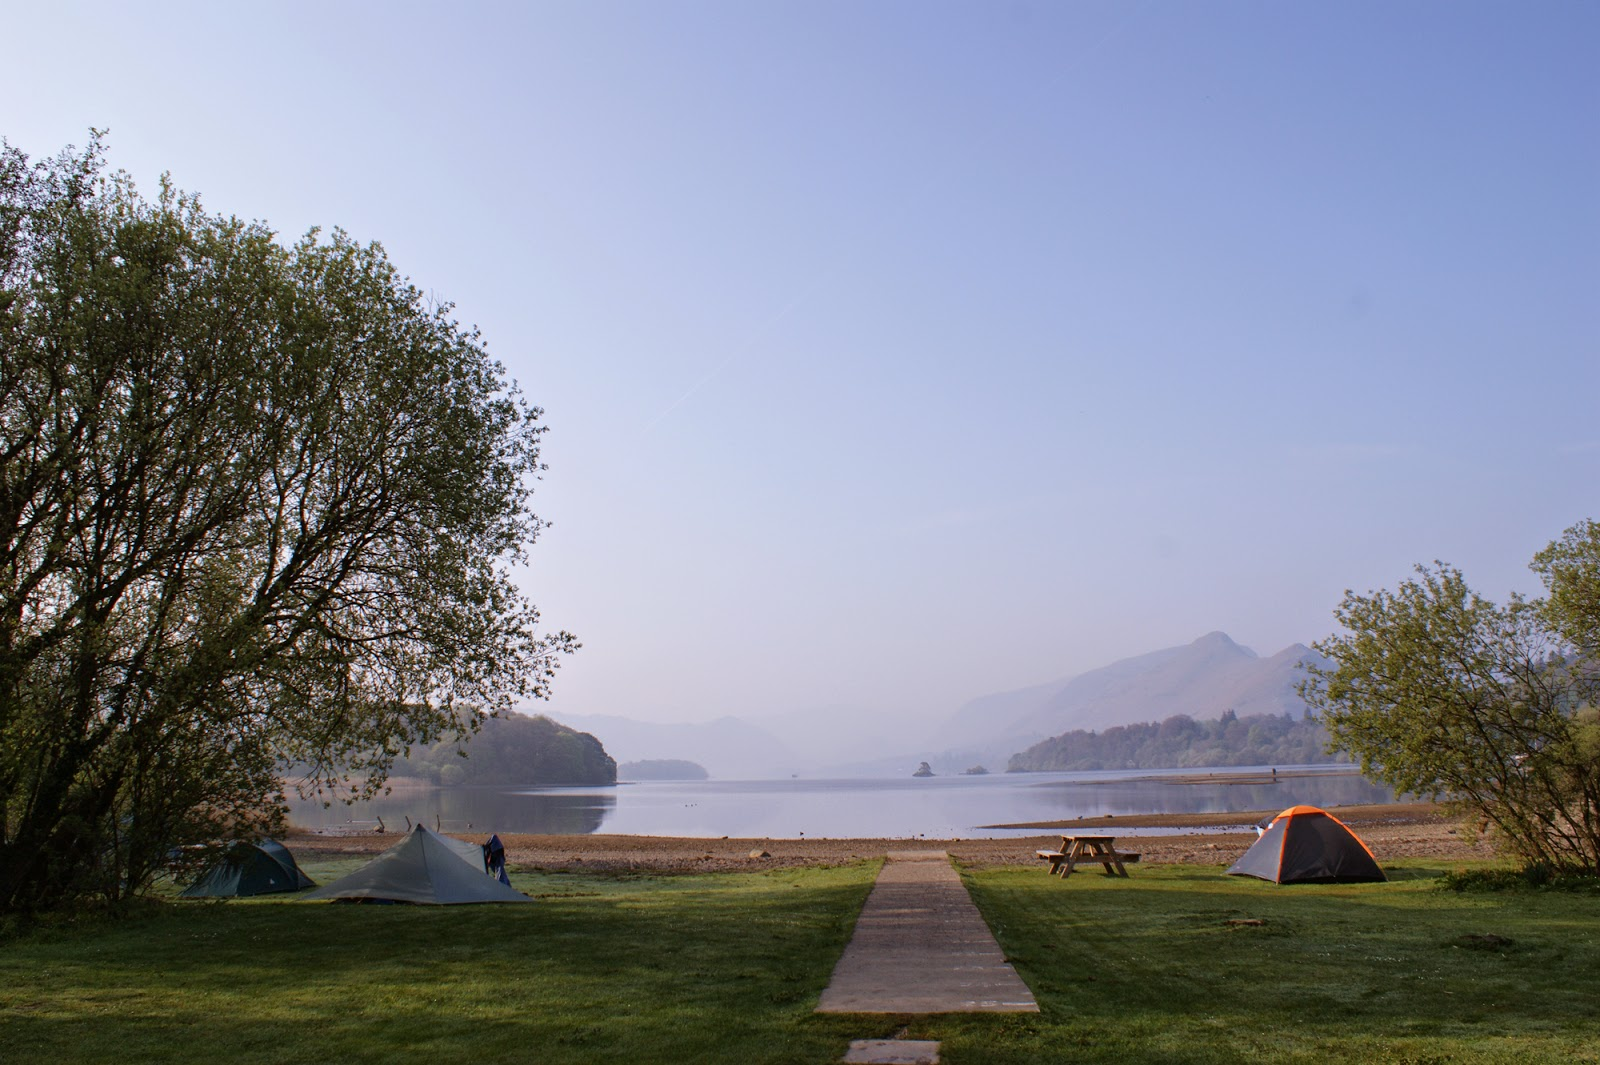 My best camping spot in the Lake District - looking over Derwent Water towards Borrowdale with Catbells on the right. What a view to wake up to in the morning!